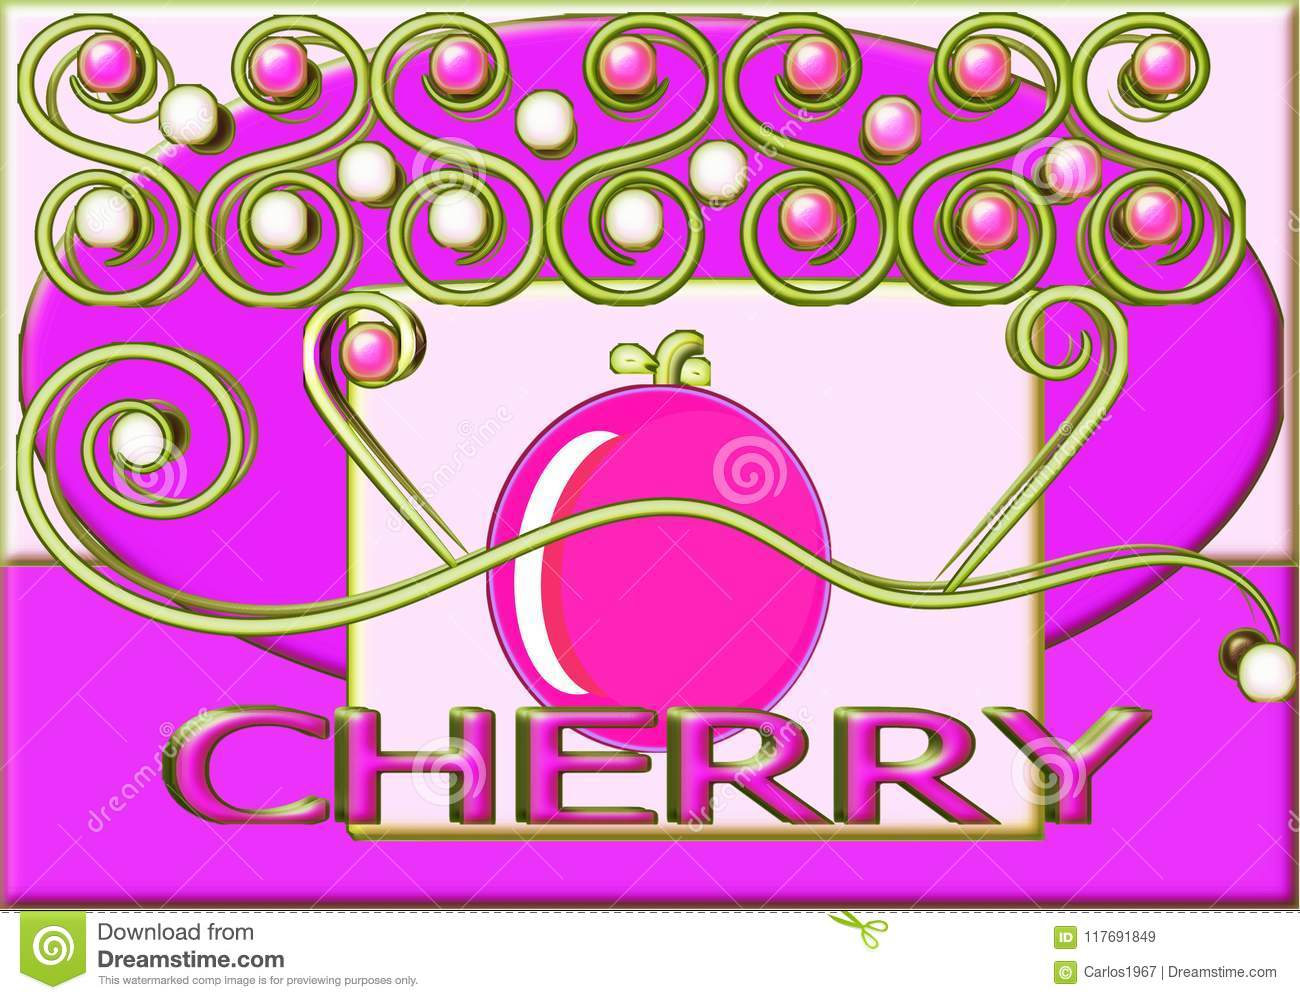 Cherry With Text In English And Watermarks On Rose Background